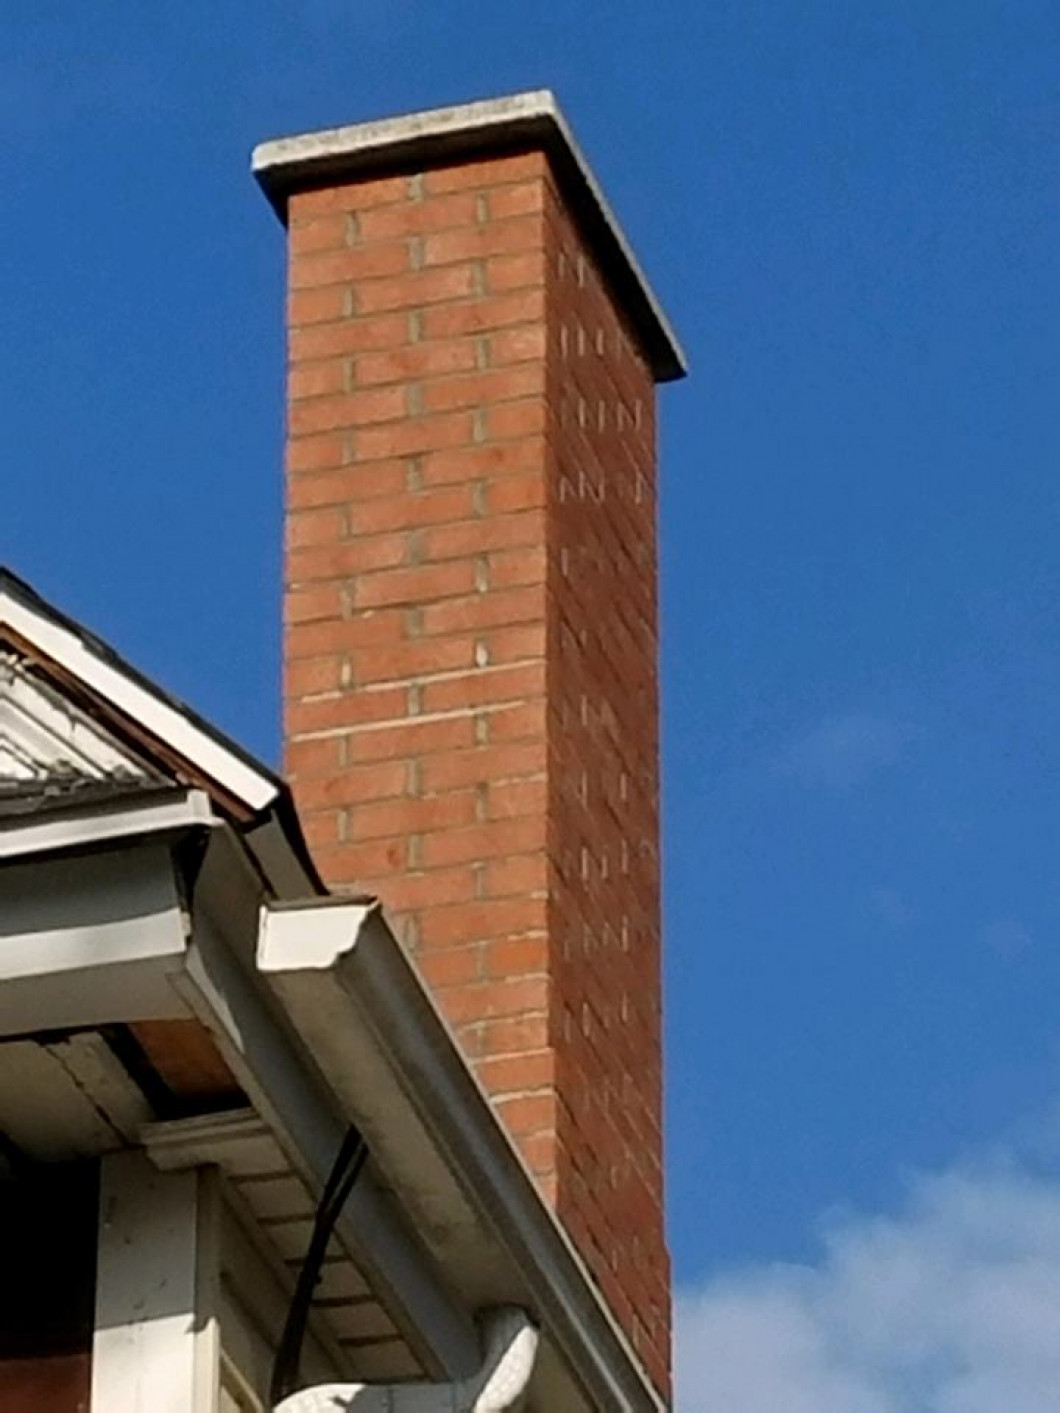 When's the last time you checked your chimney?